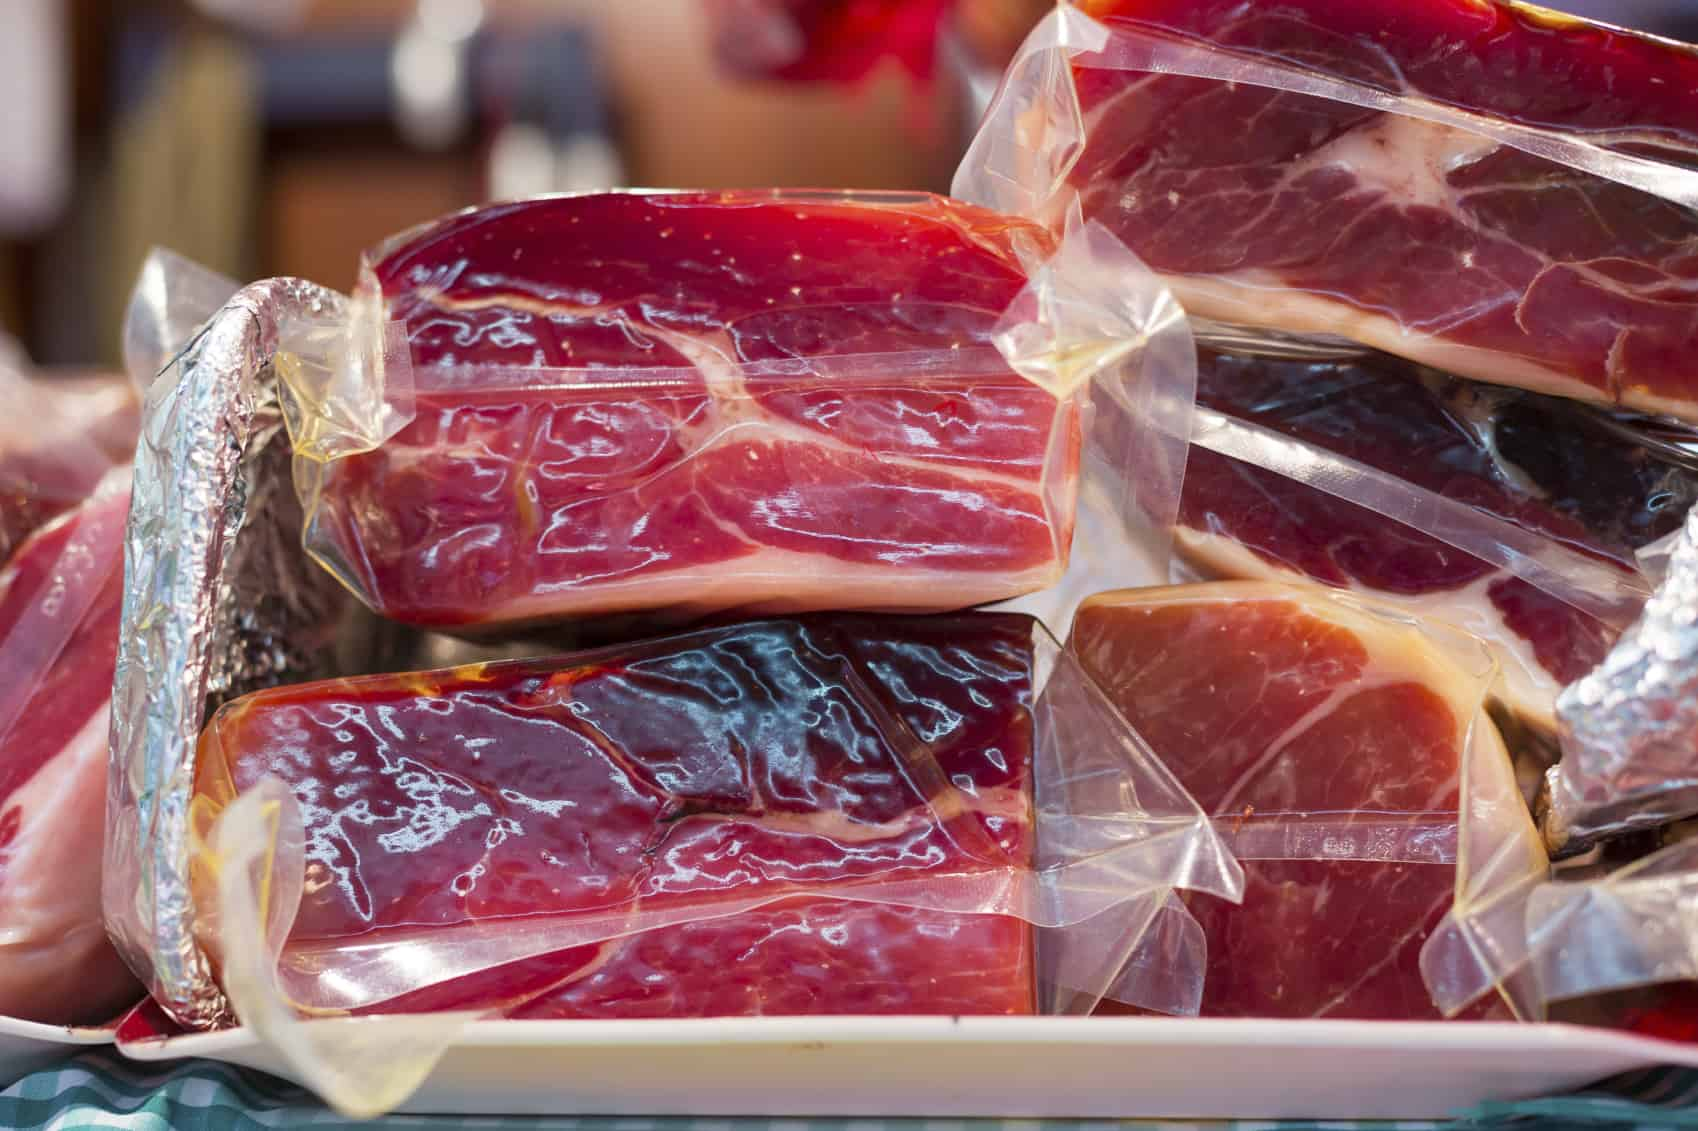 Why Shrink Wraps Are Most Preferable Packaging Material For Meat?